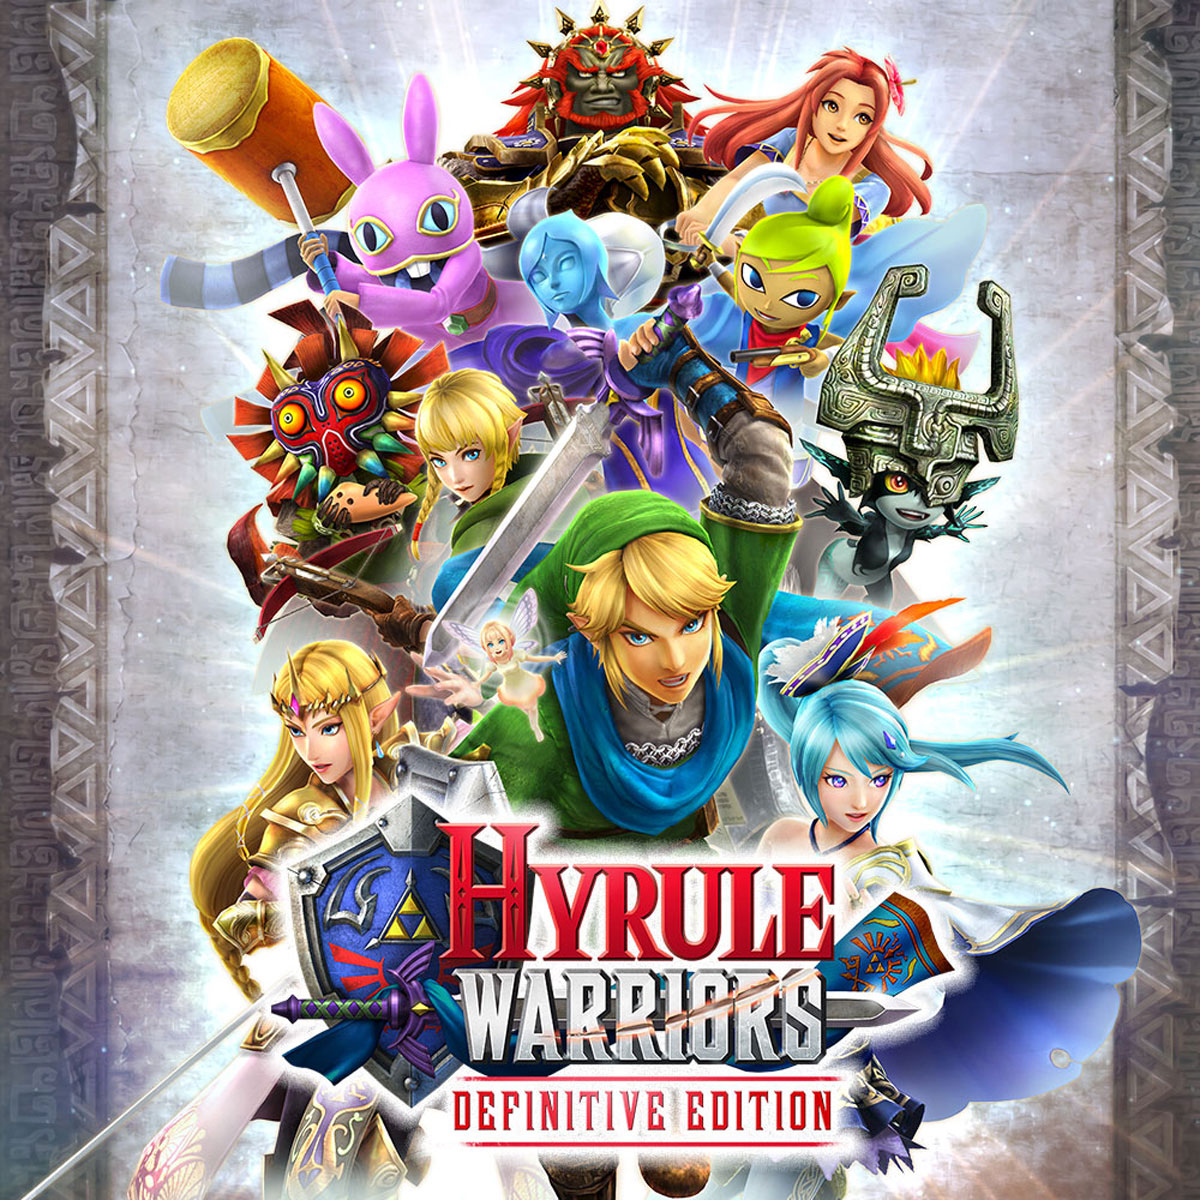 Hyrule Warriors: Definitive Edition (Nintendo Switch) hard nuts of history warriors